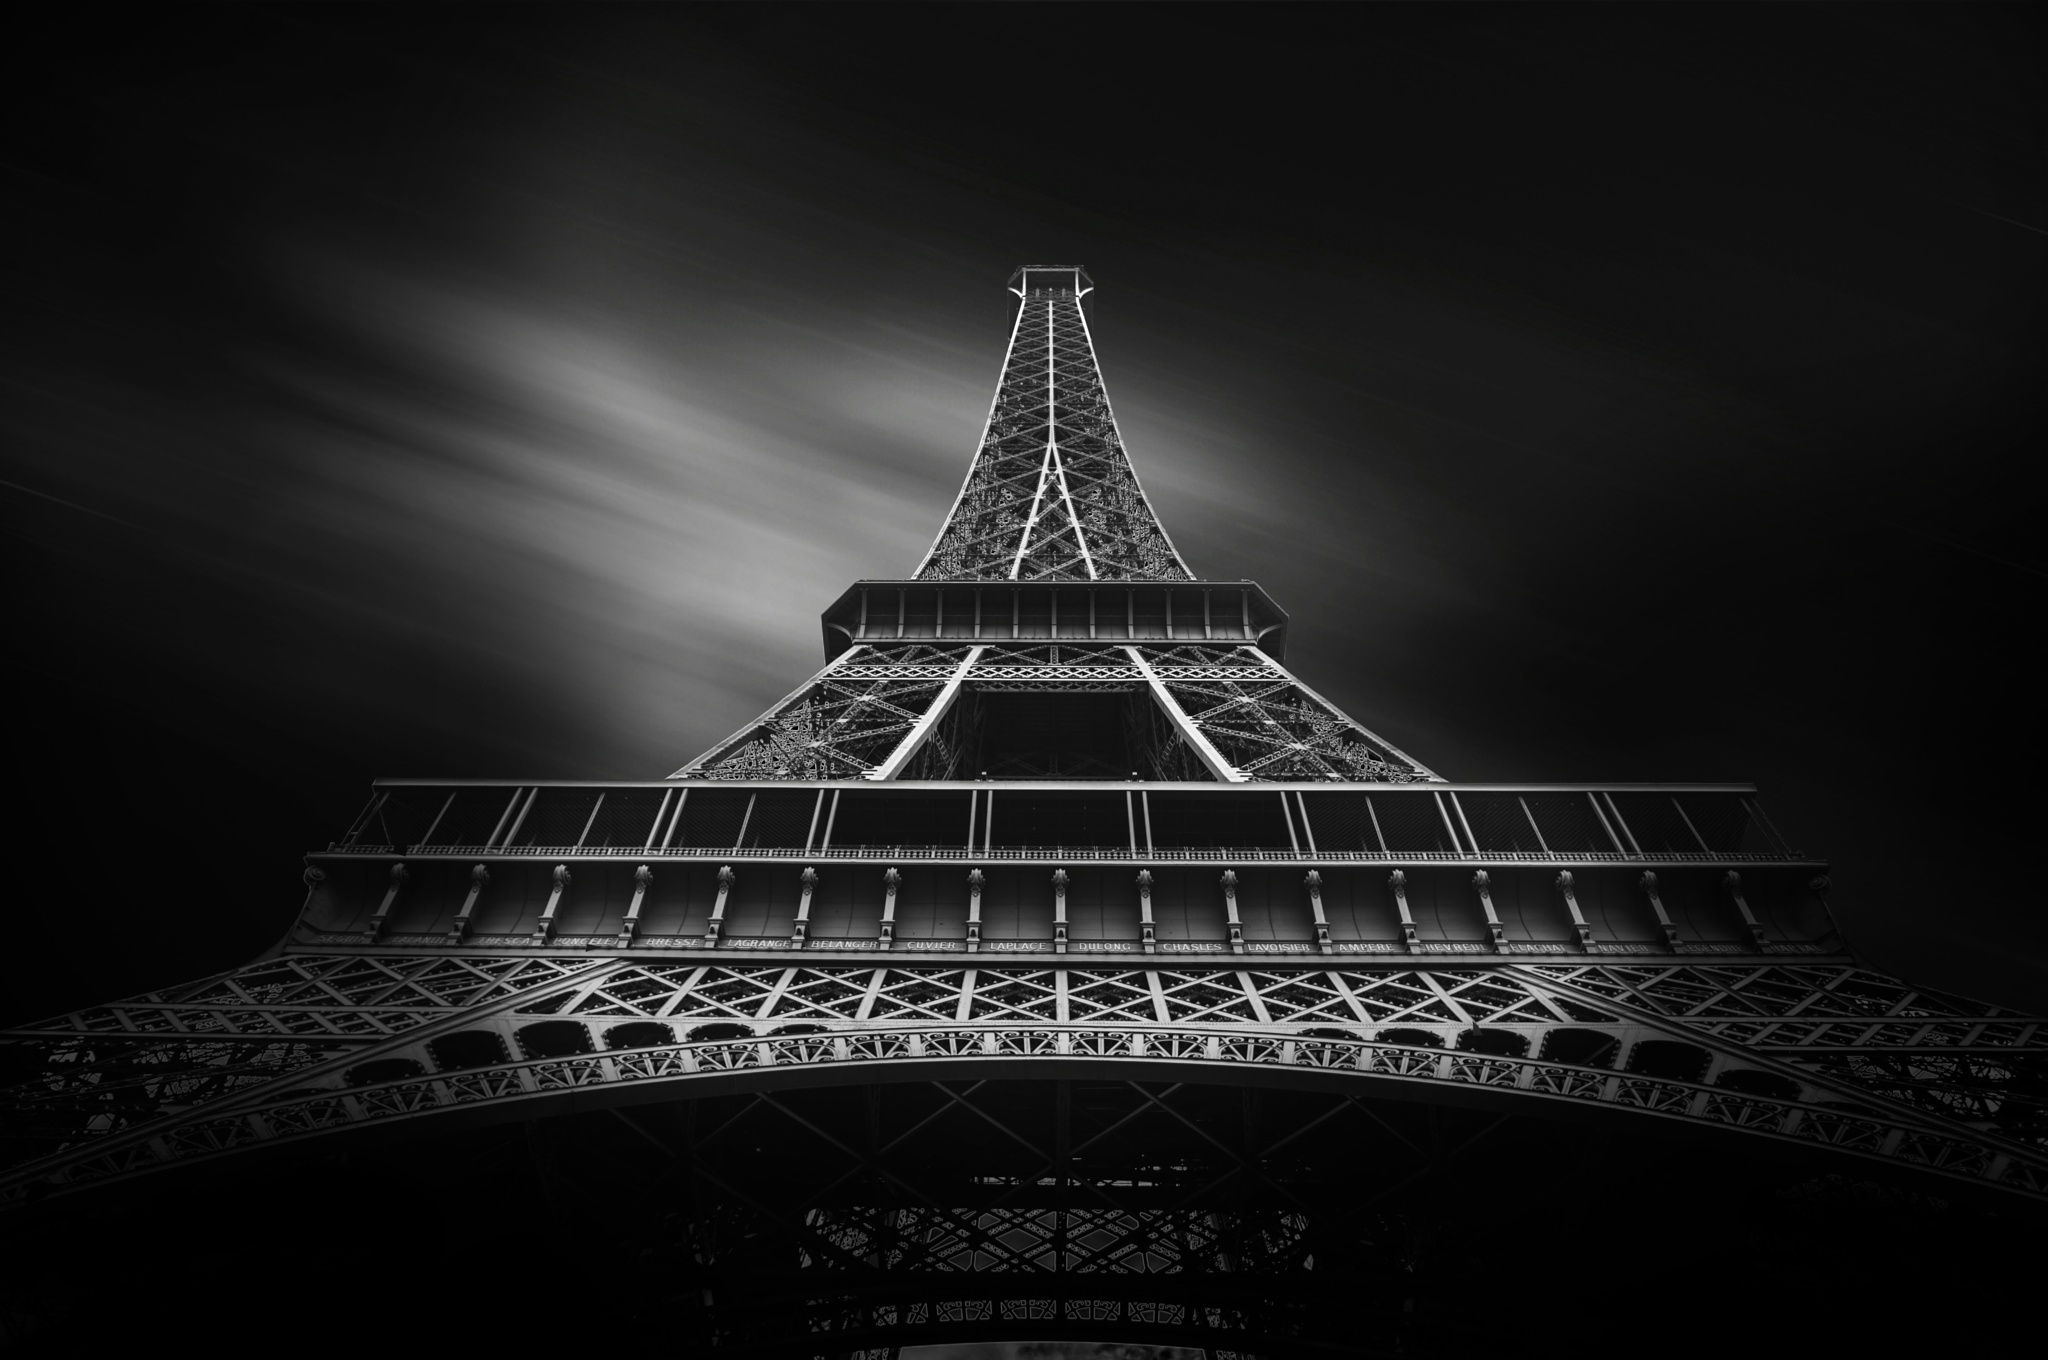 Eiffel Tower by RafalWroblewski